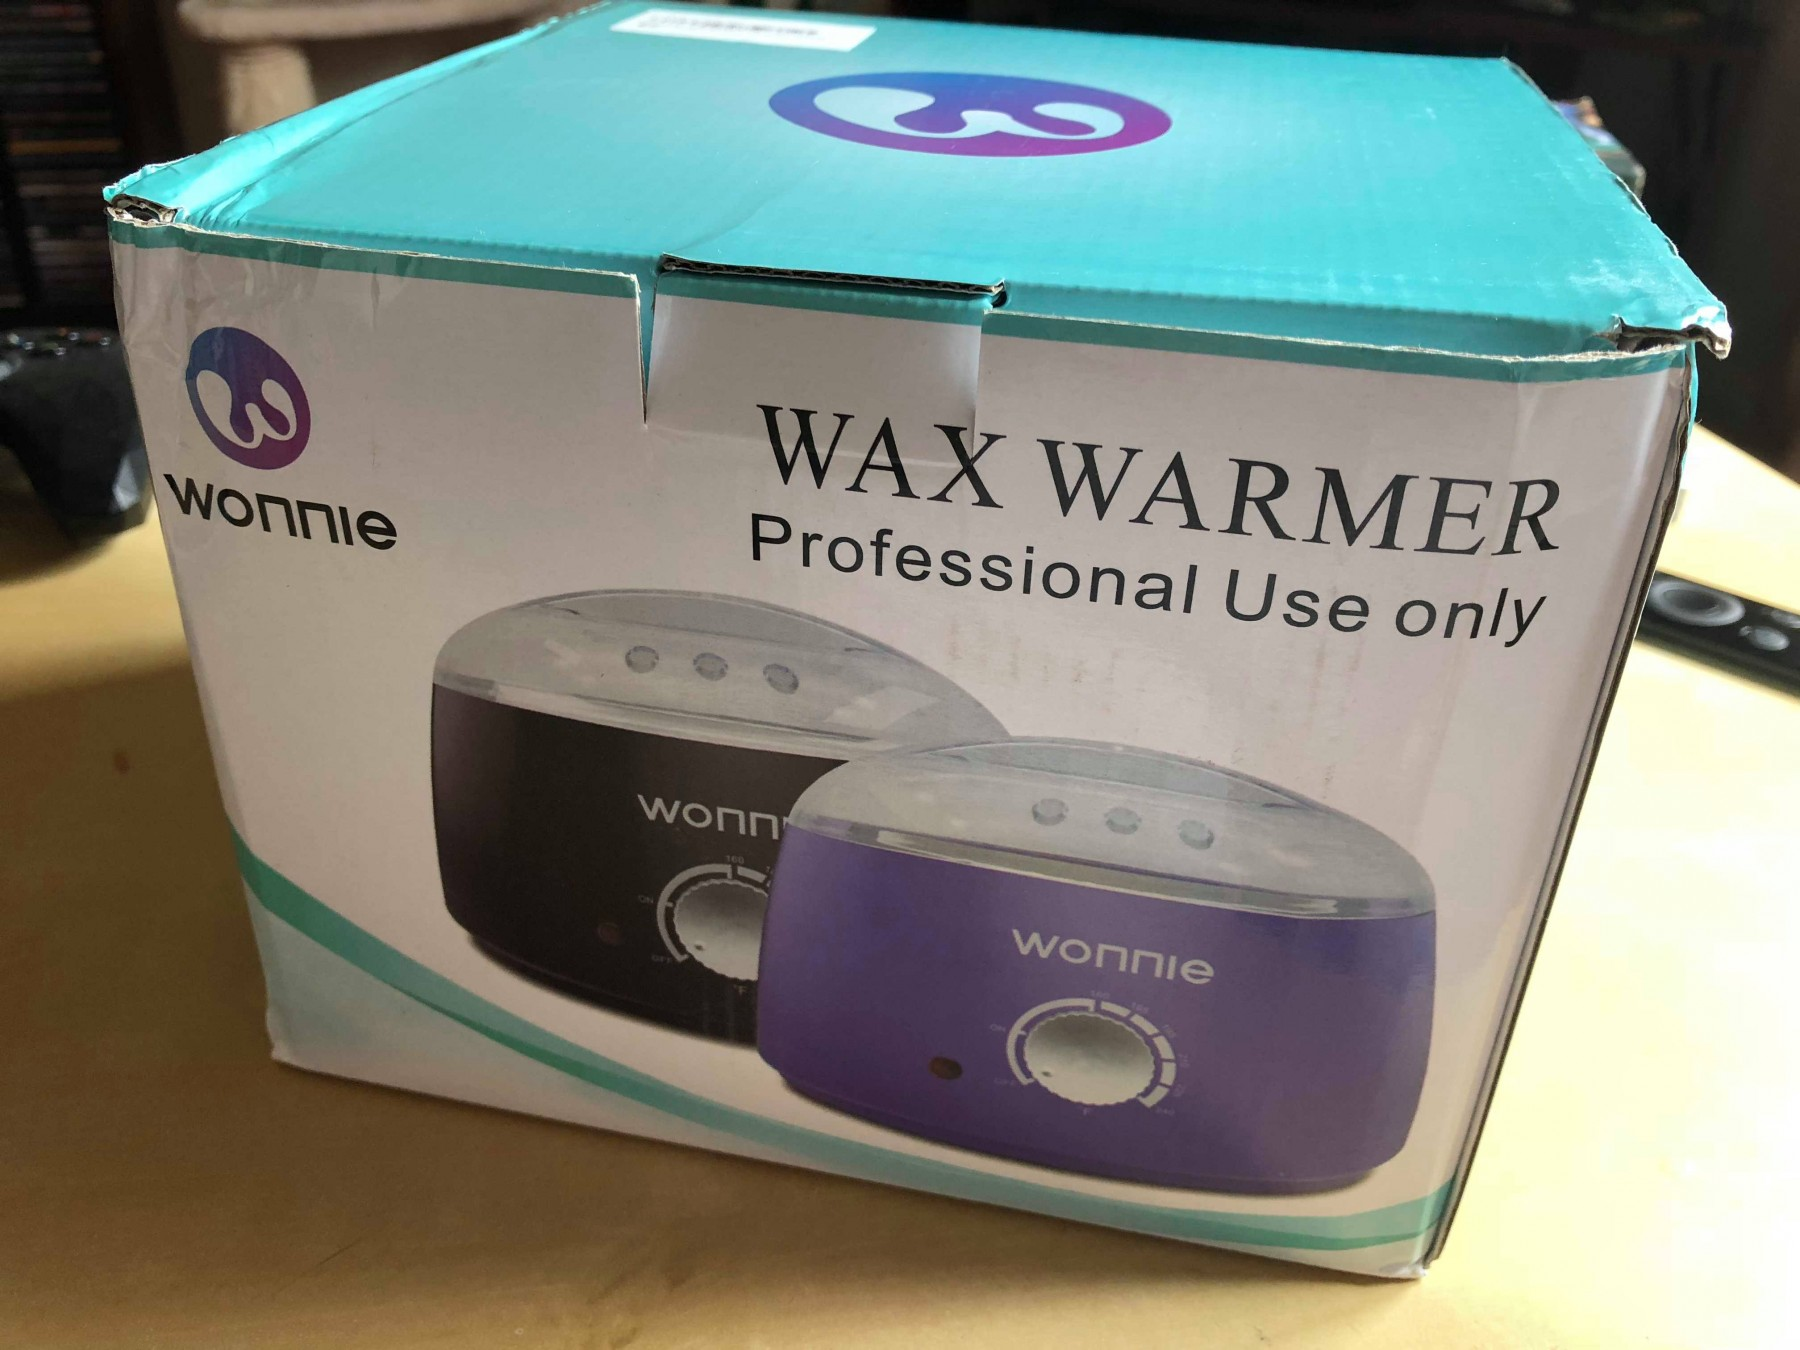 Great Wax Heater, Shame About The Wax